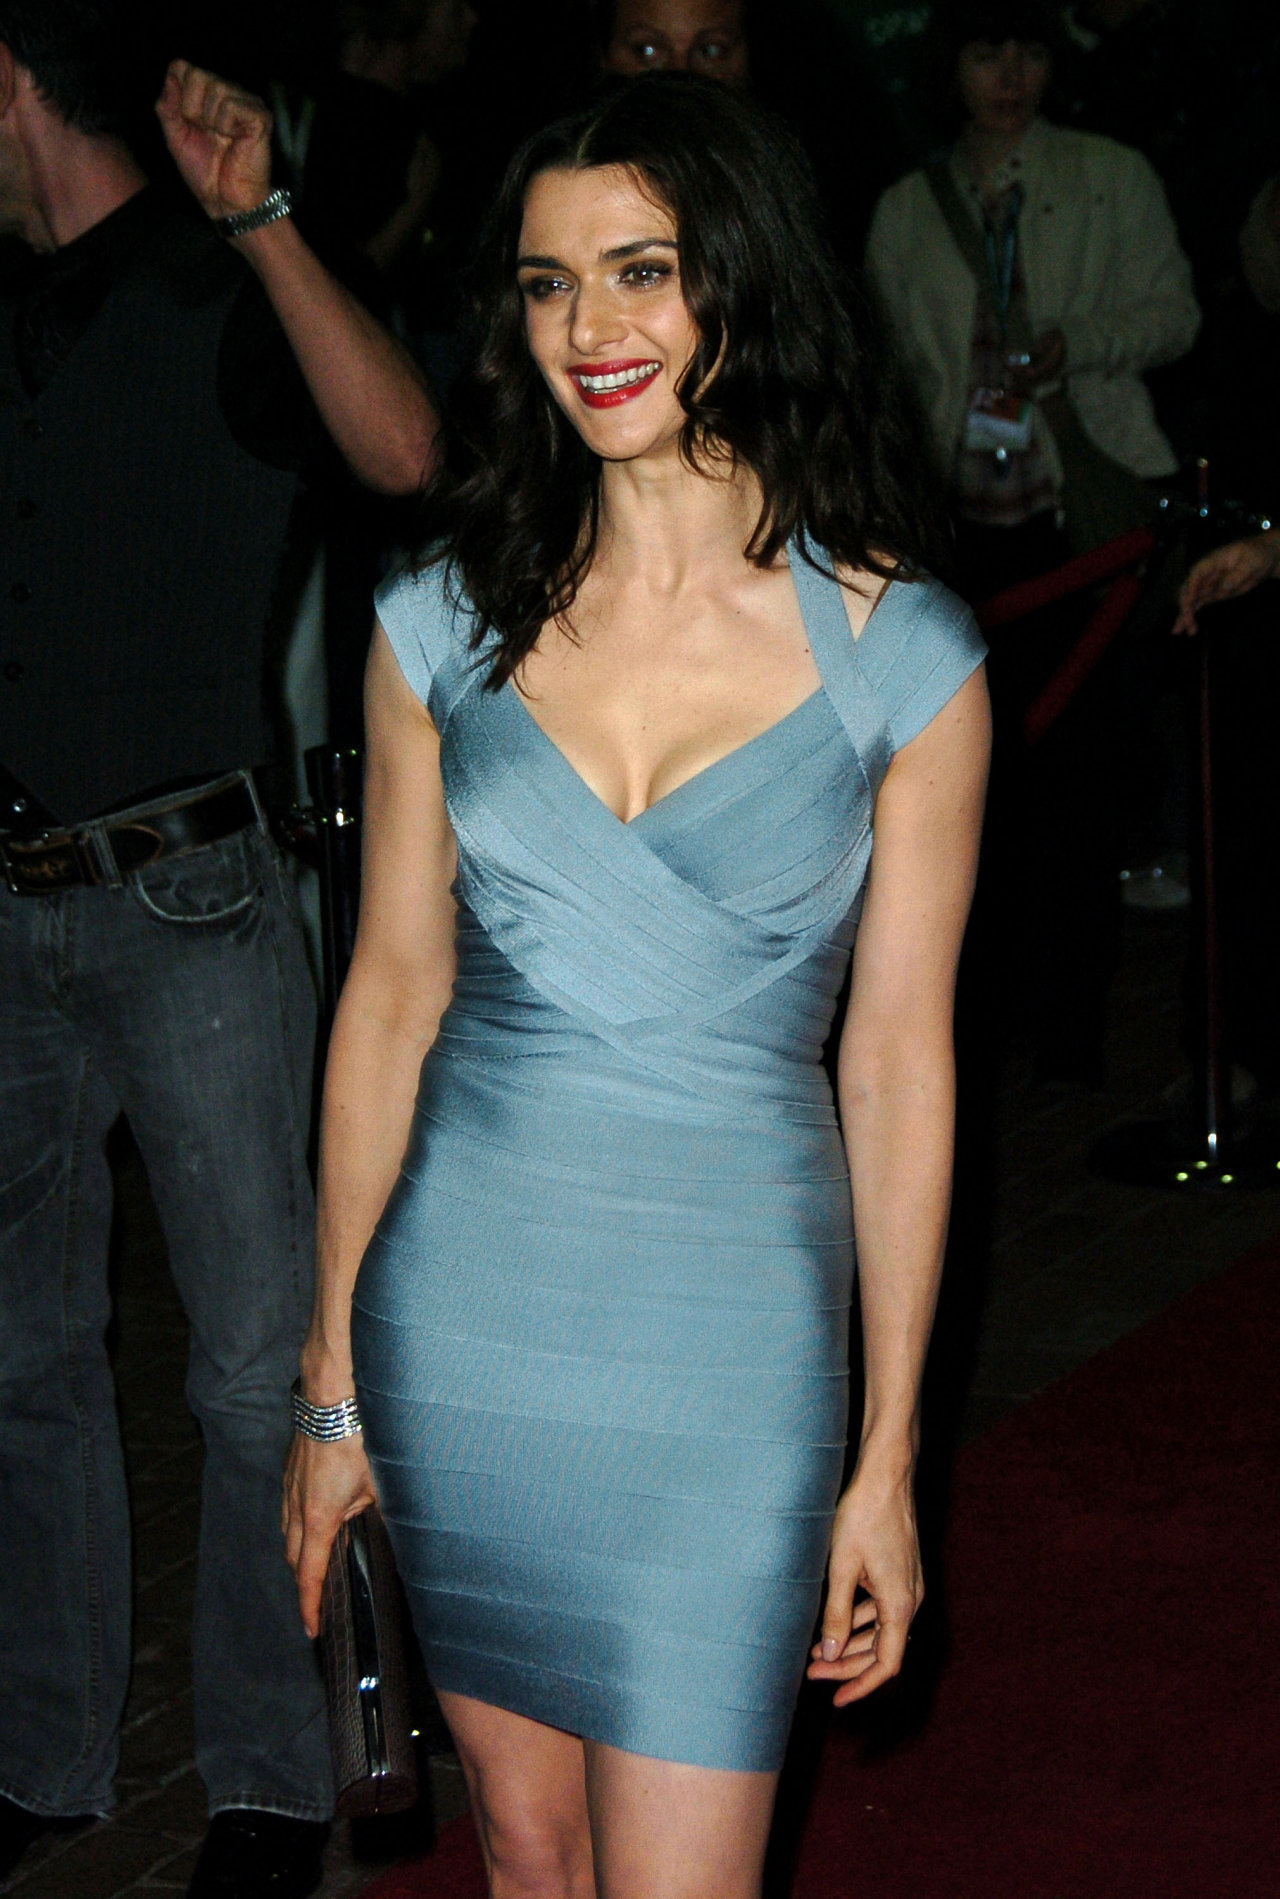 Rachel weisz leaked wallpapers 113650